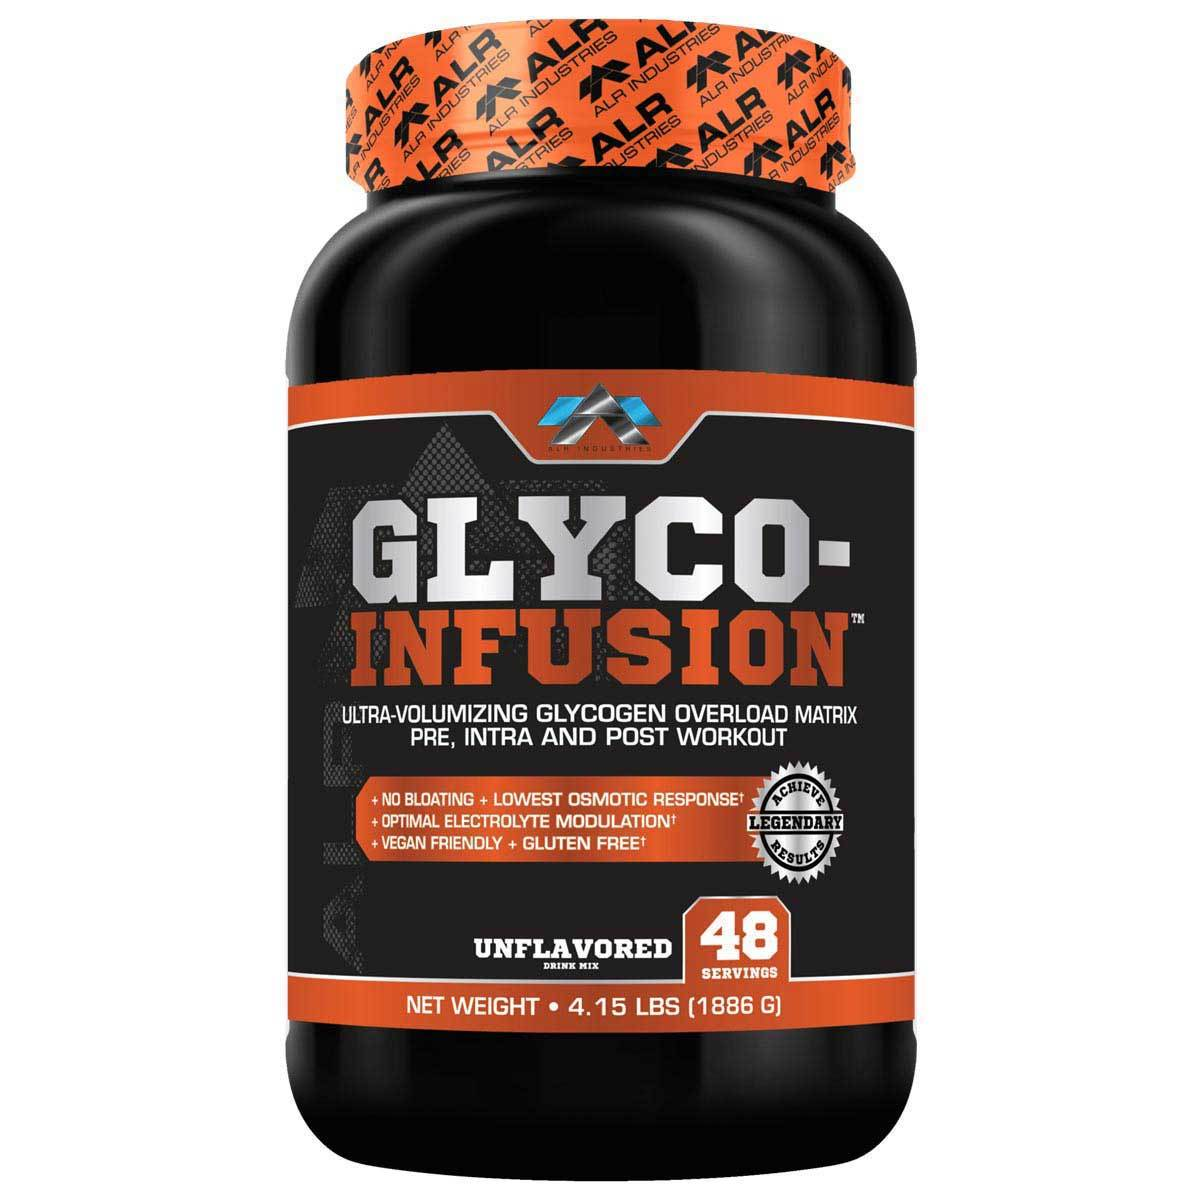 ALRI (ALR Industries) Glyco-Infusion 48 Servings Sport Performance / Recovery ALRI (ALR Industries) Unflavored  (1059274096683)